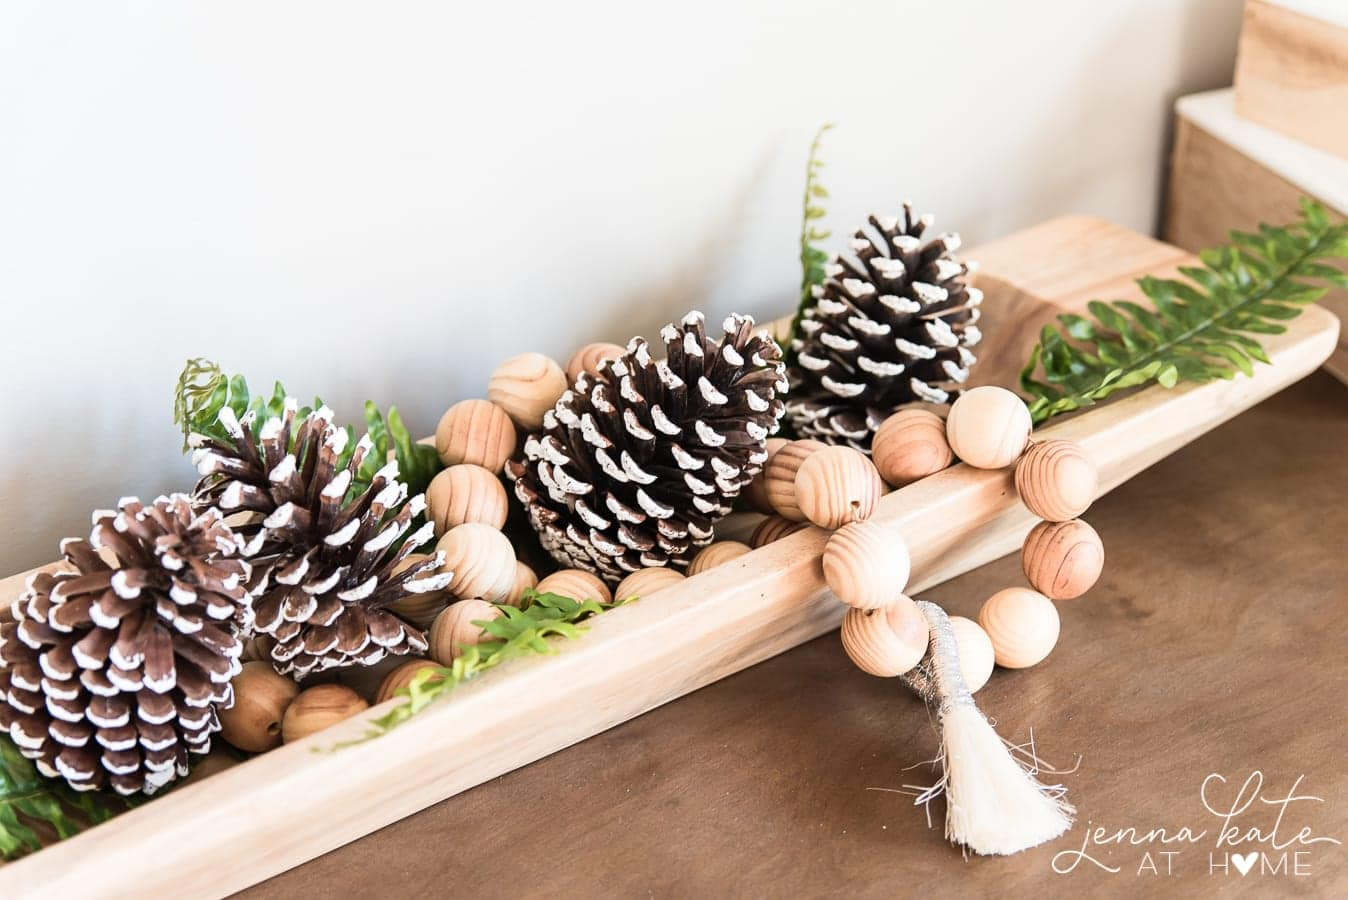 Use what you find in nature to decorate for fall on a budget